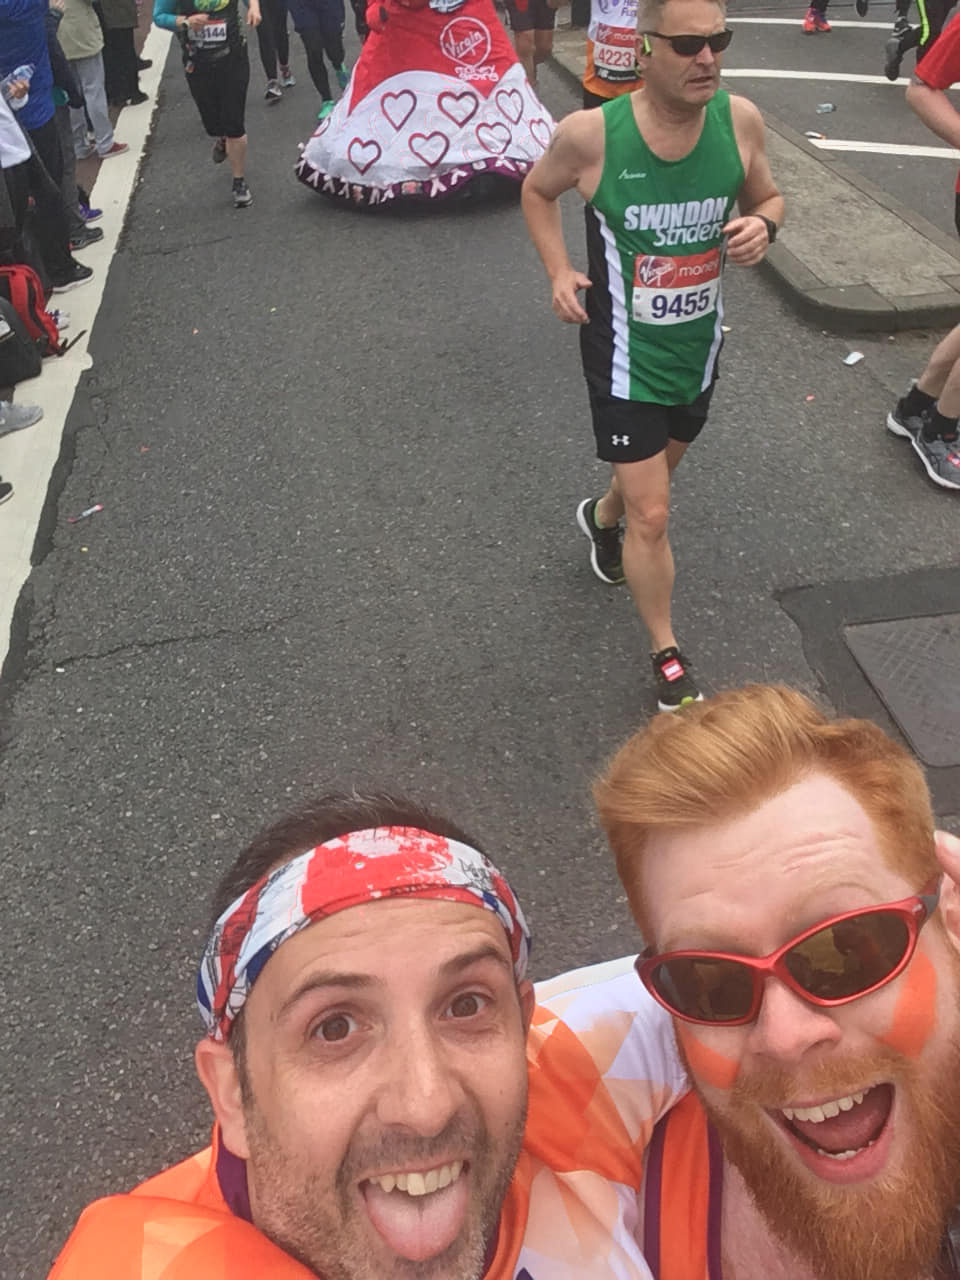 Me and Paul both smiling in front of other runners